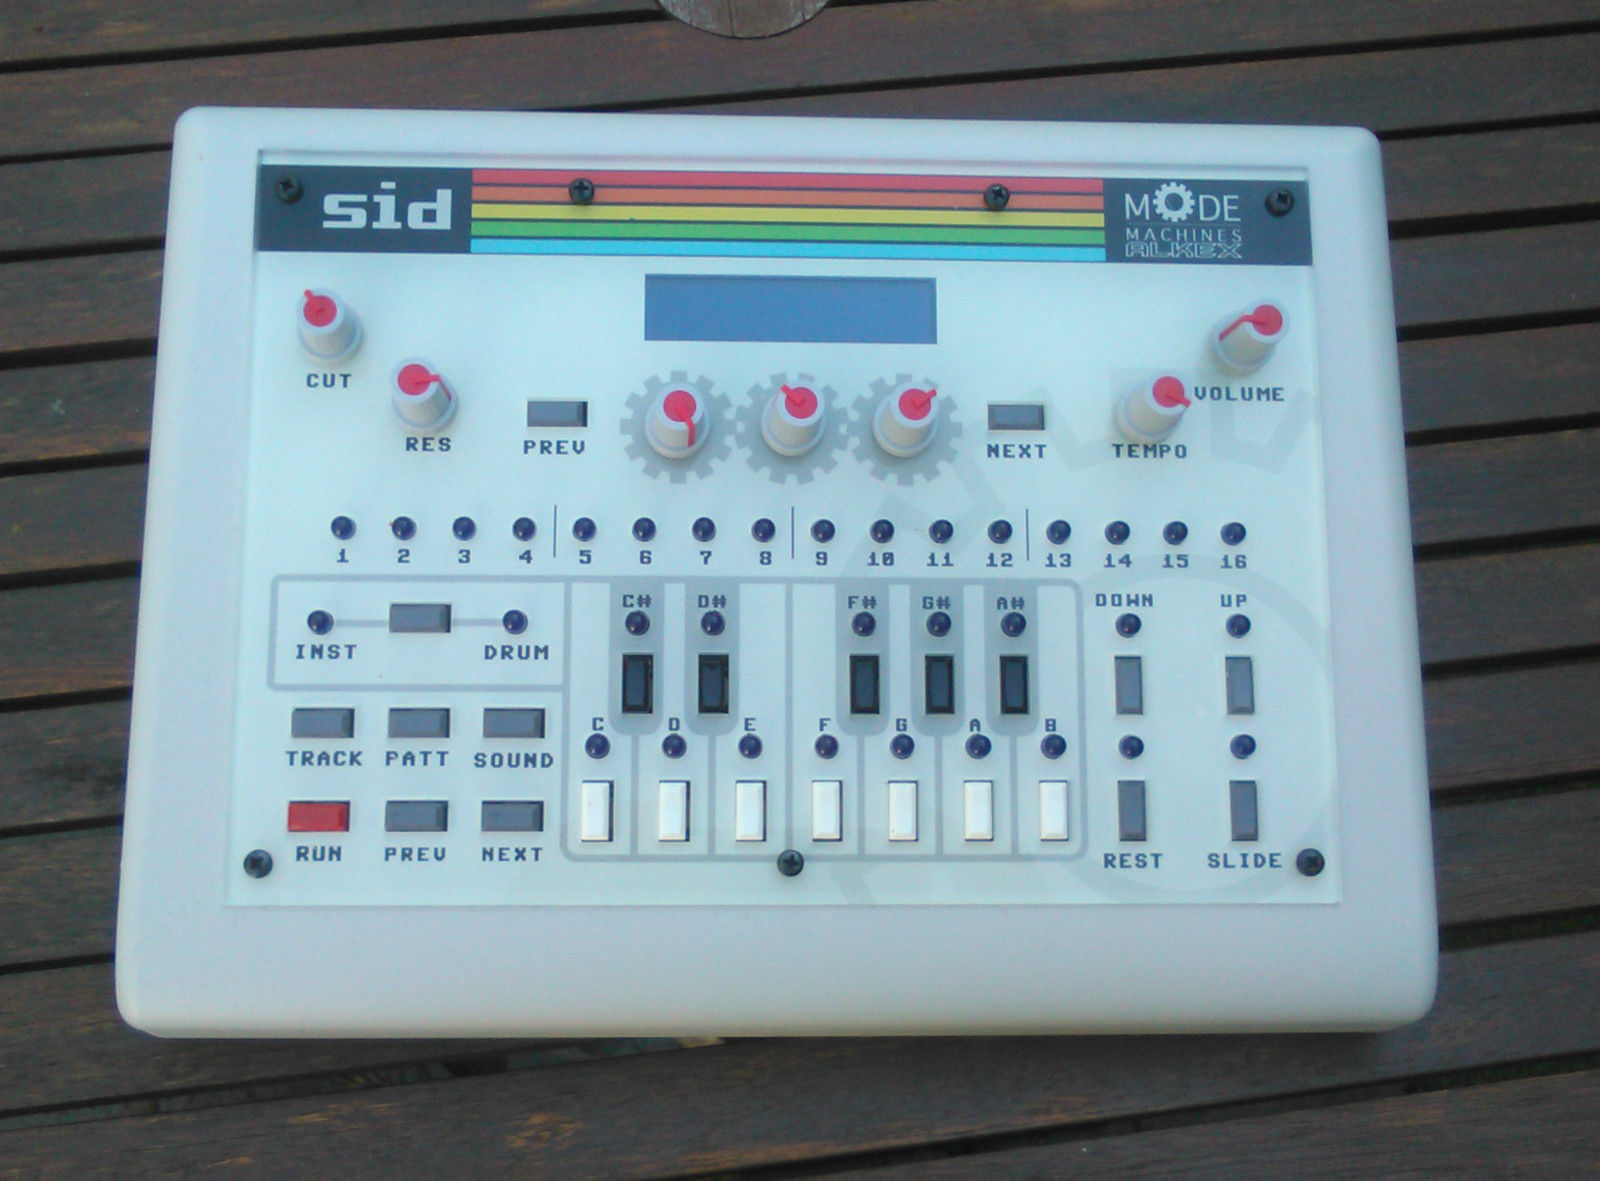 Matrixsynth Wednesday May 6 2015 Diabolical Devices Casio Sk1 Circuit Bent Sampling Fun Mode Machines Sid 8bit Chiptunes Style Synthesizer